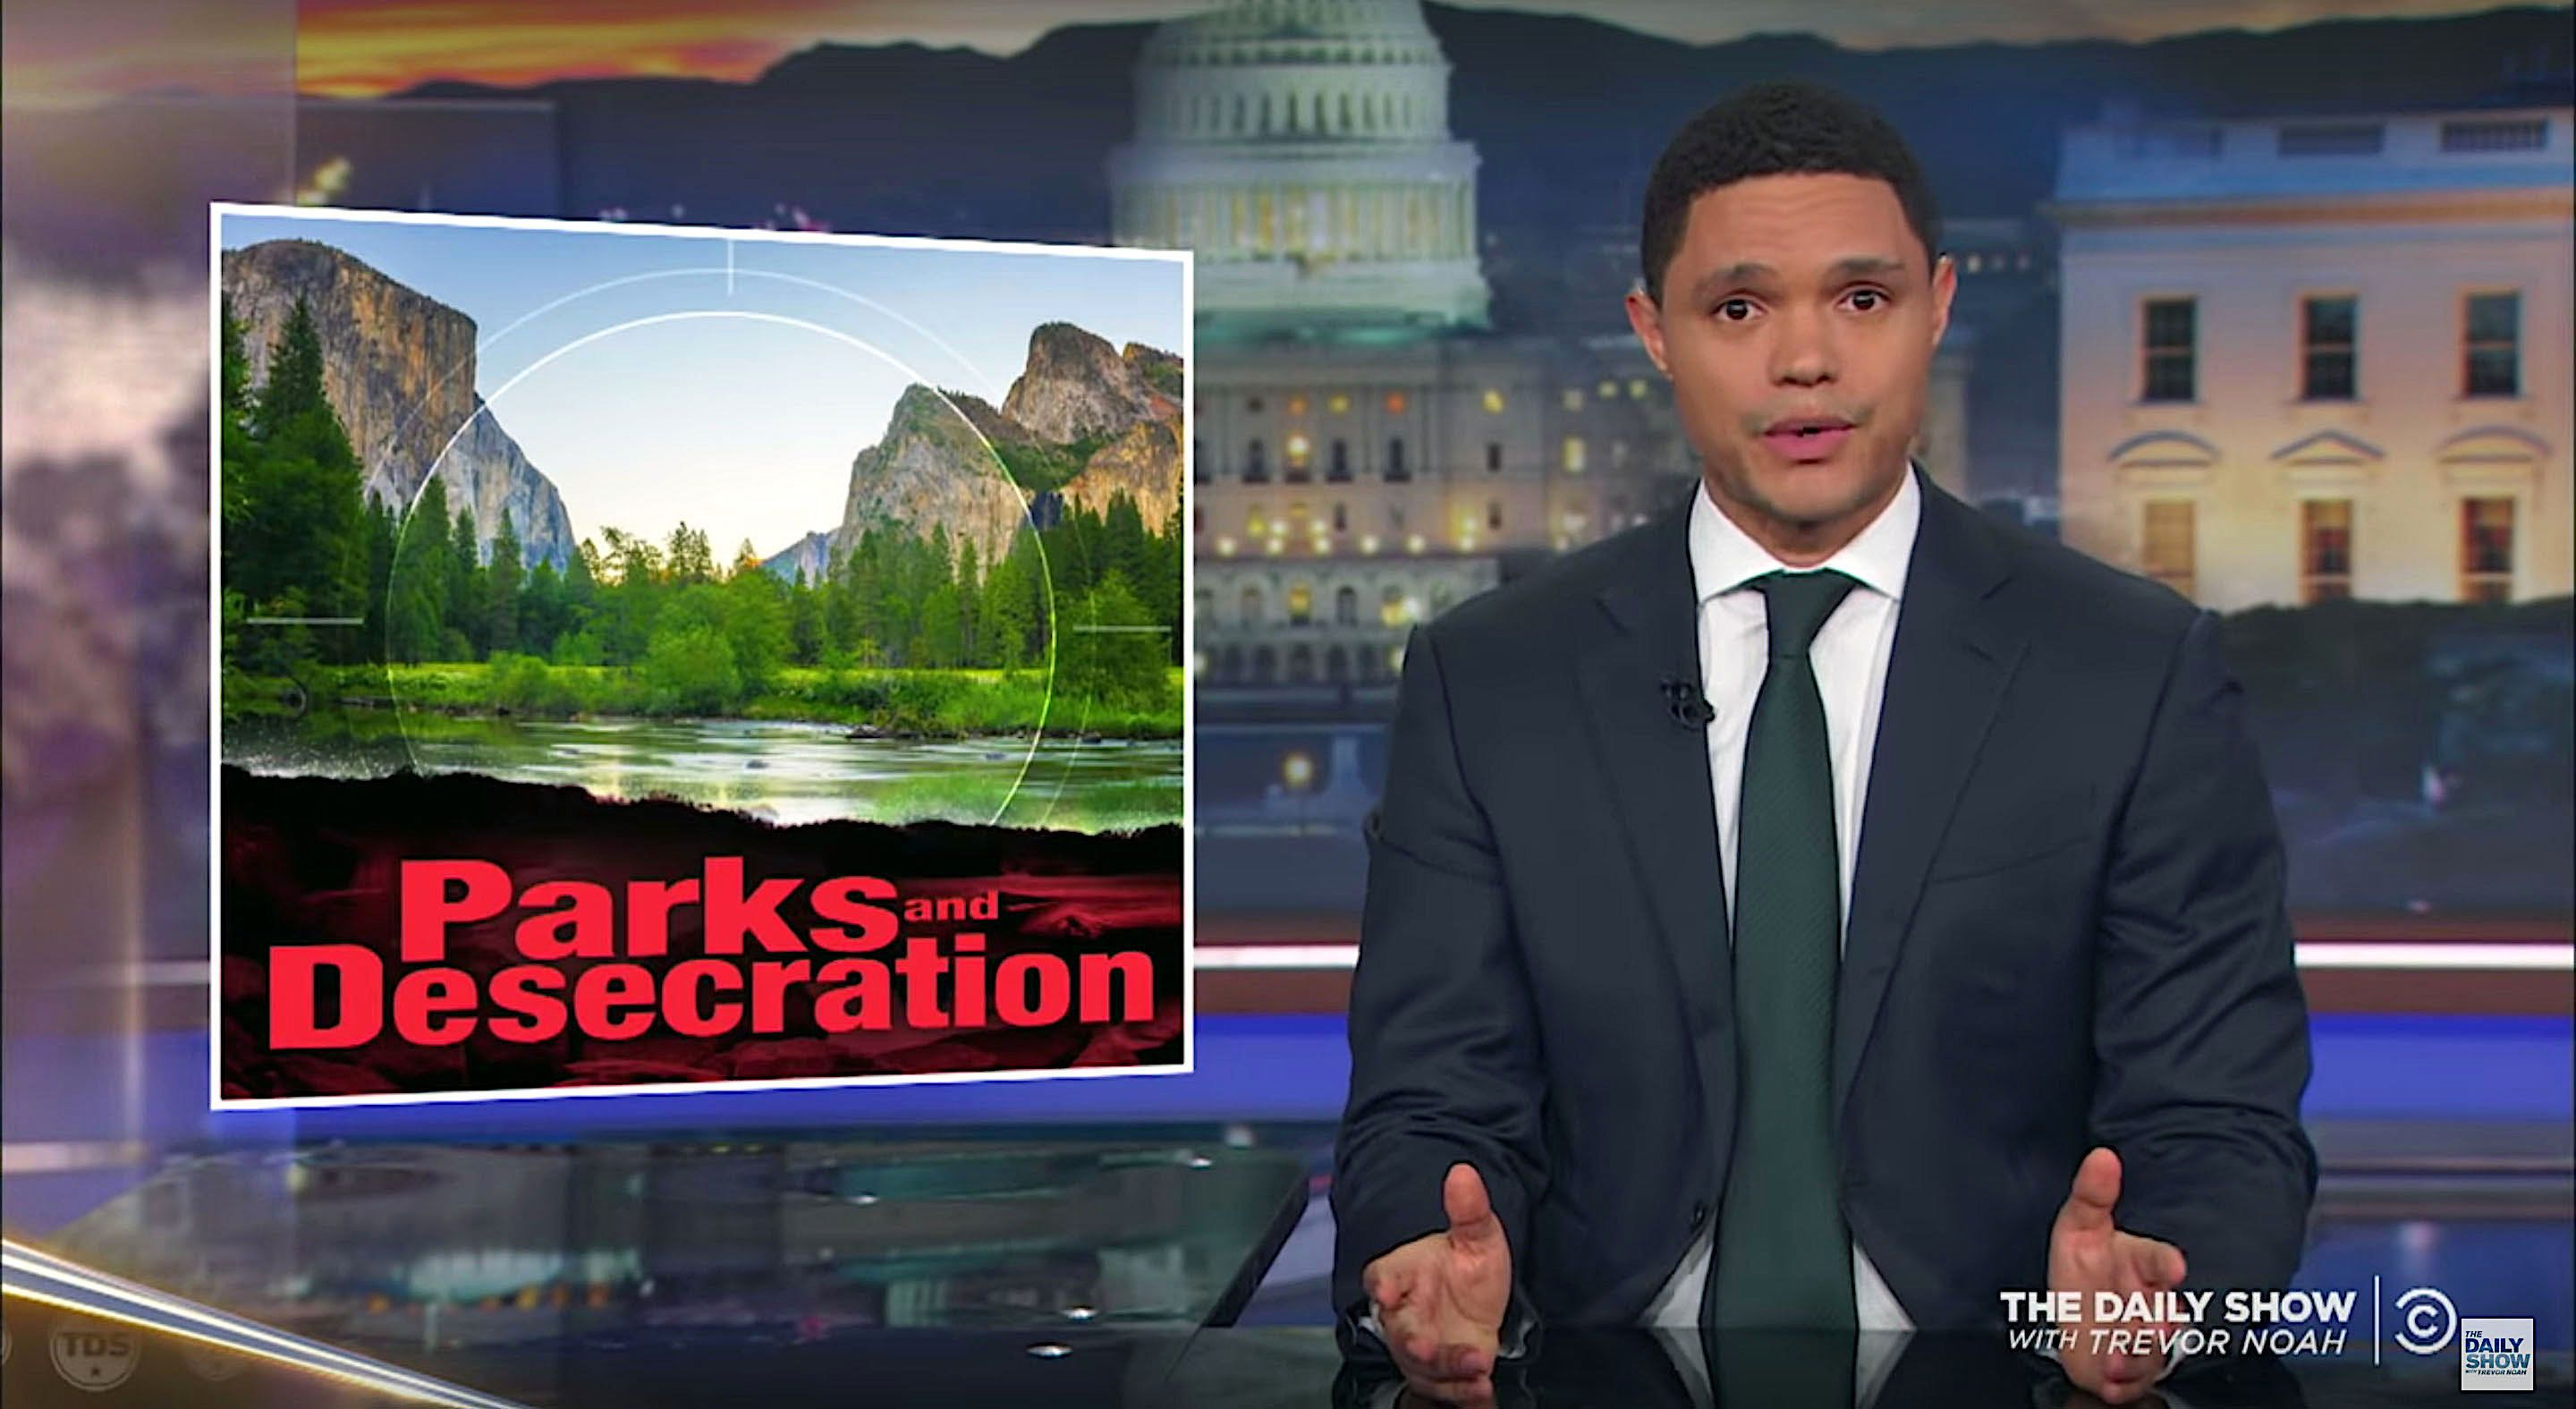 Trevor Noah of The Daily Show calls out the Trump administration on conservation issues